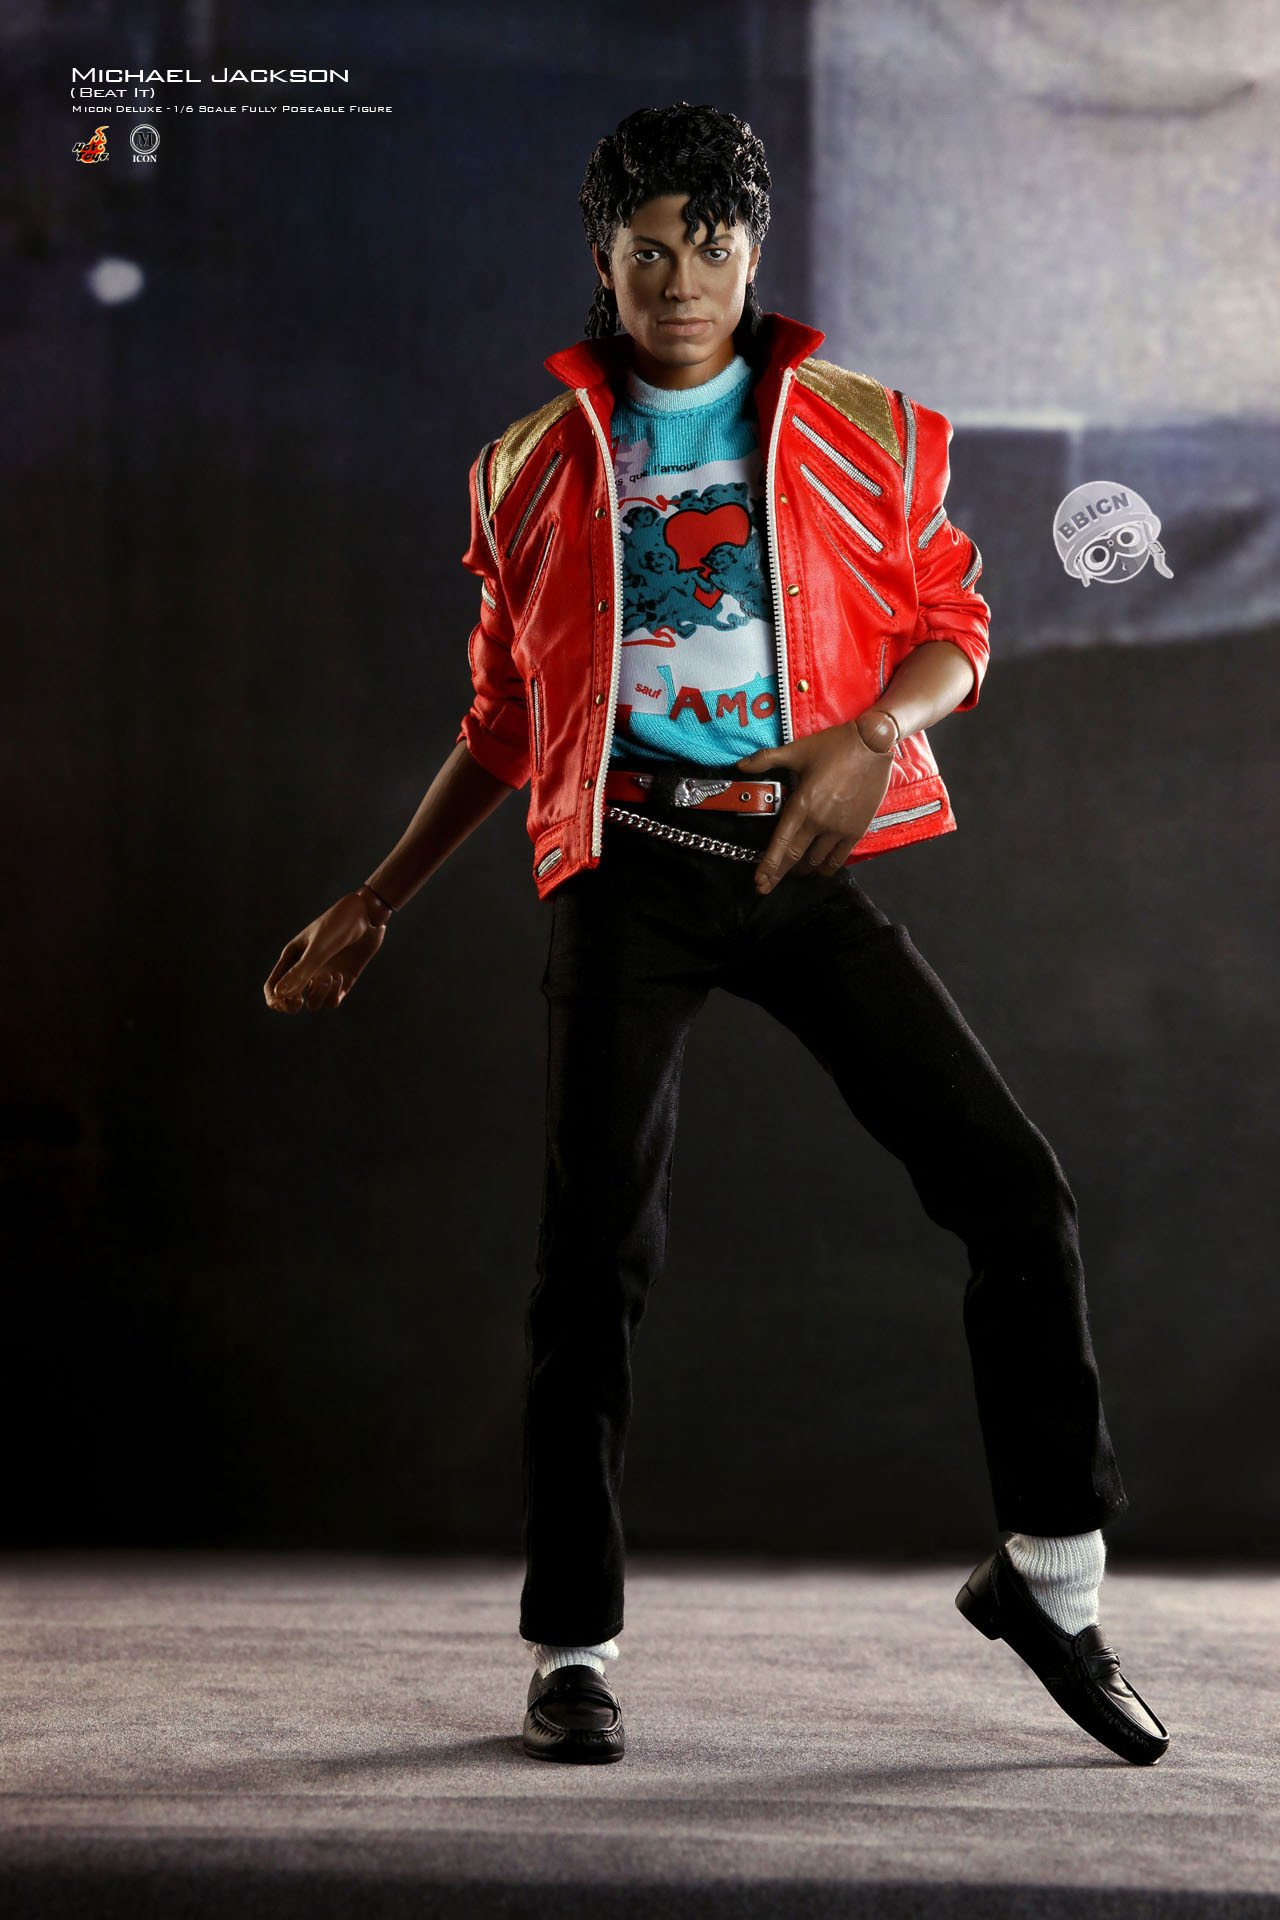 [NUOVE FOTO] Nuova Action Figure di Beat It - Pagina 2 0938556no9n99qiiq9pii7